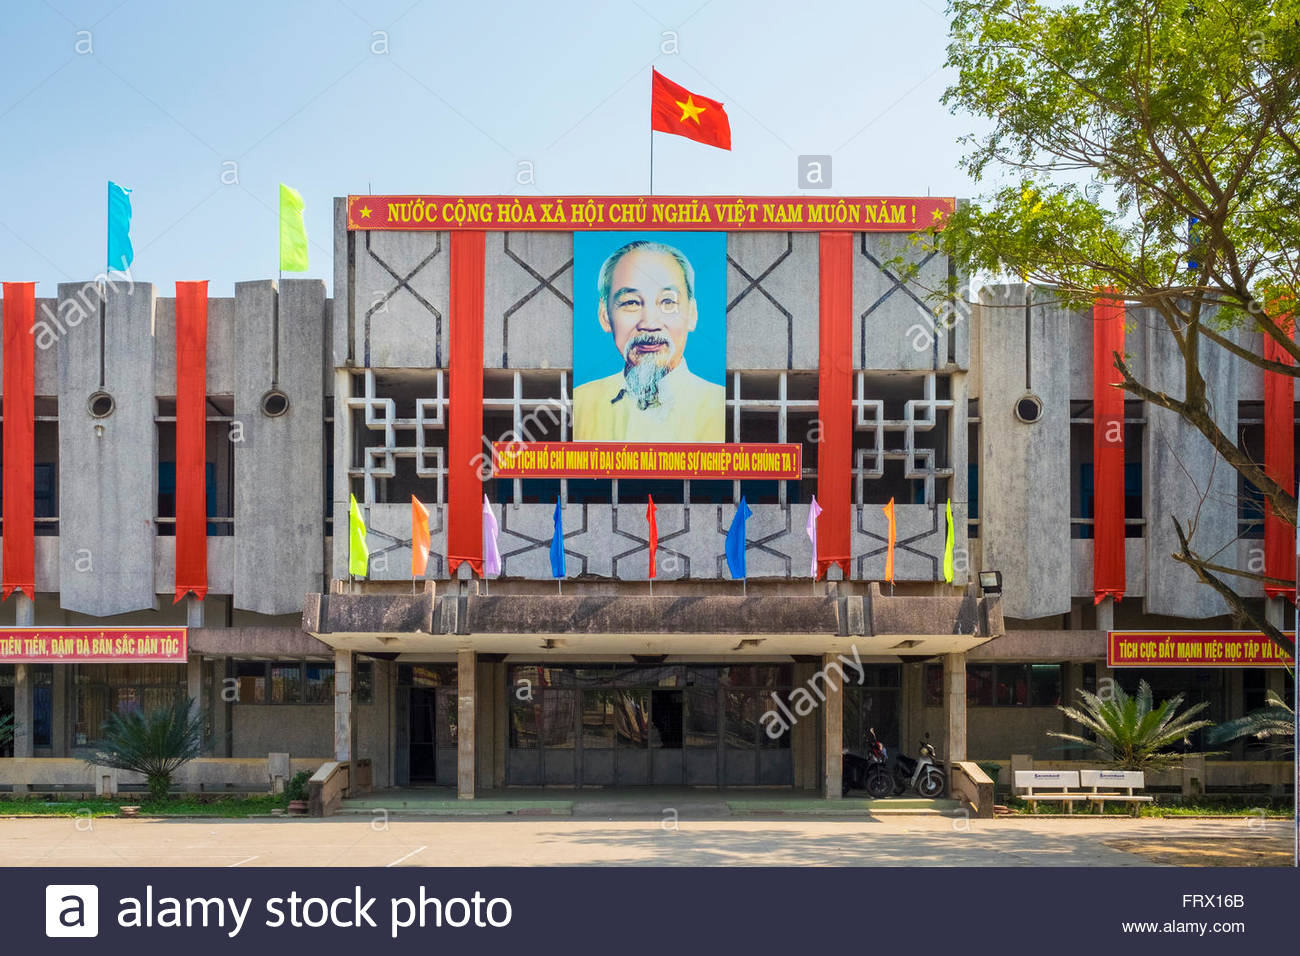 Portrait of Ho Chi Minh and Vietnamese flag on a government building, Nam Phuoc, Quang Nam Province, Vietnam - Stock Image